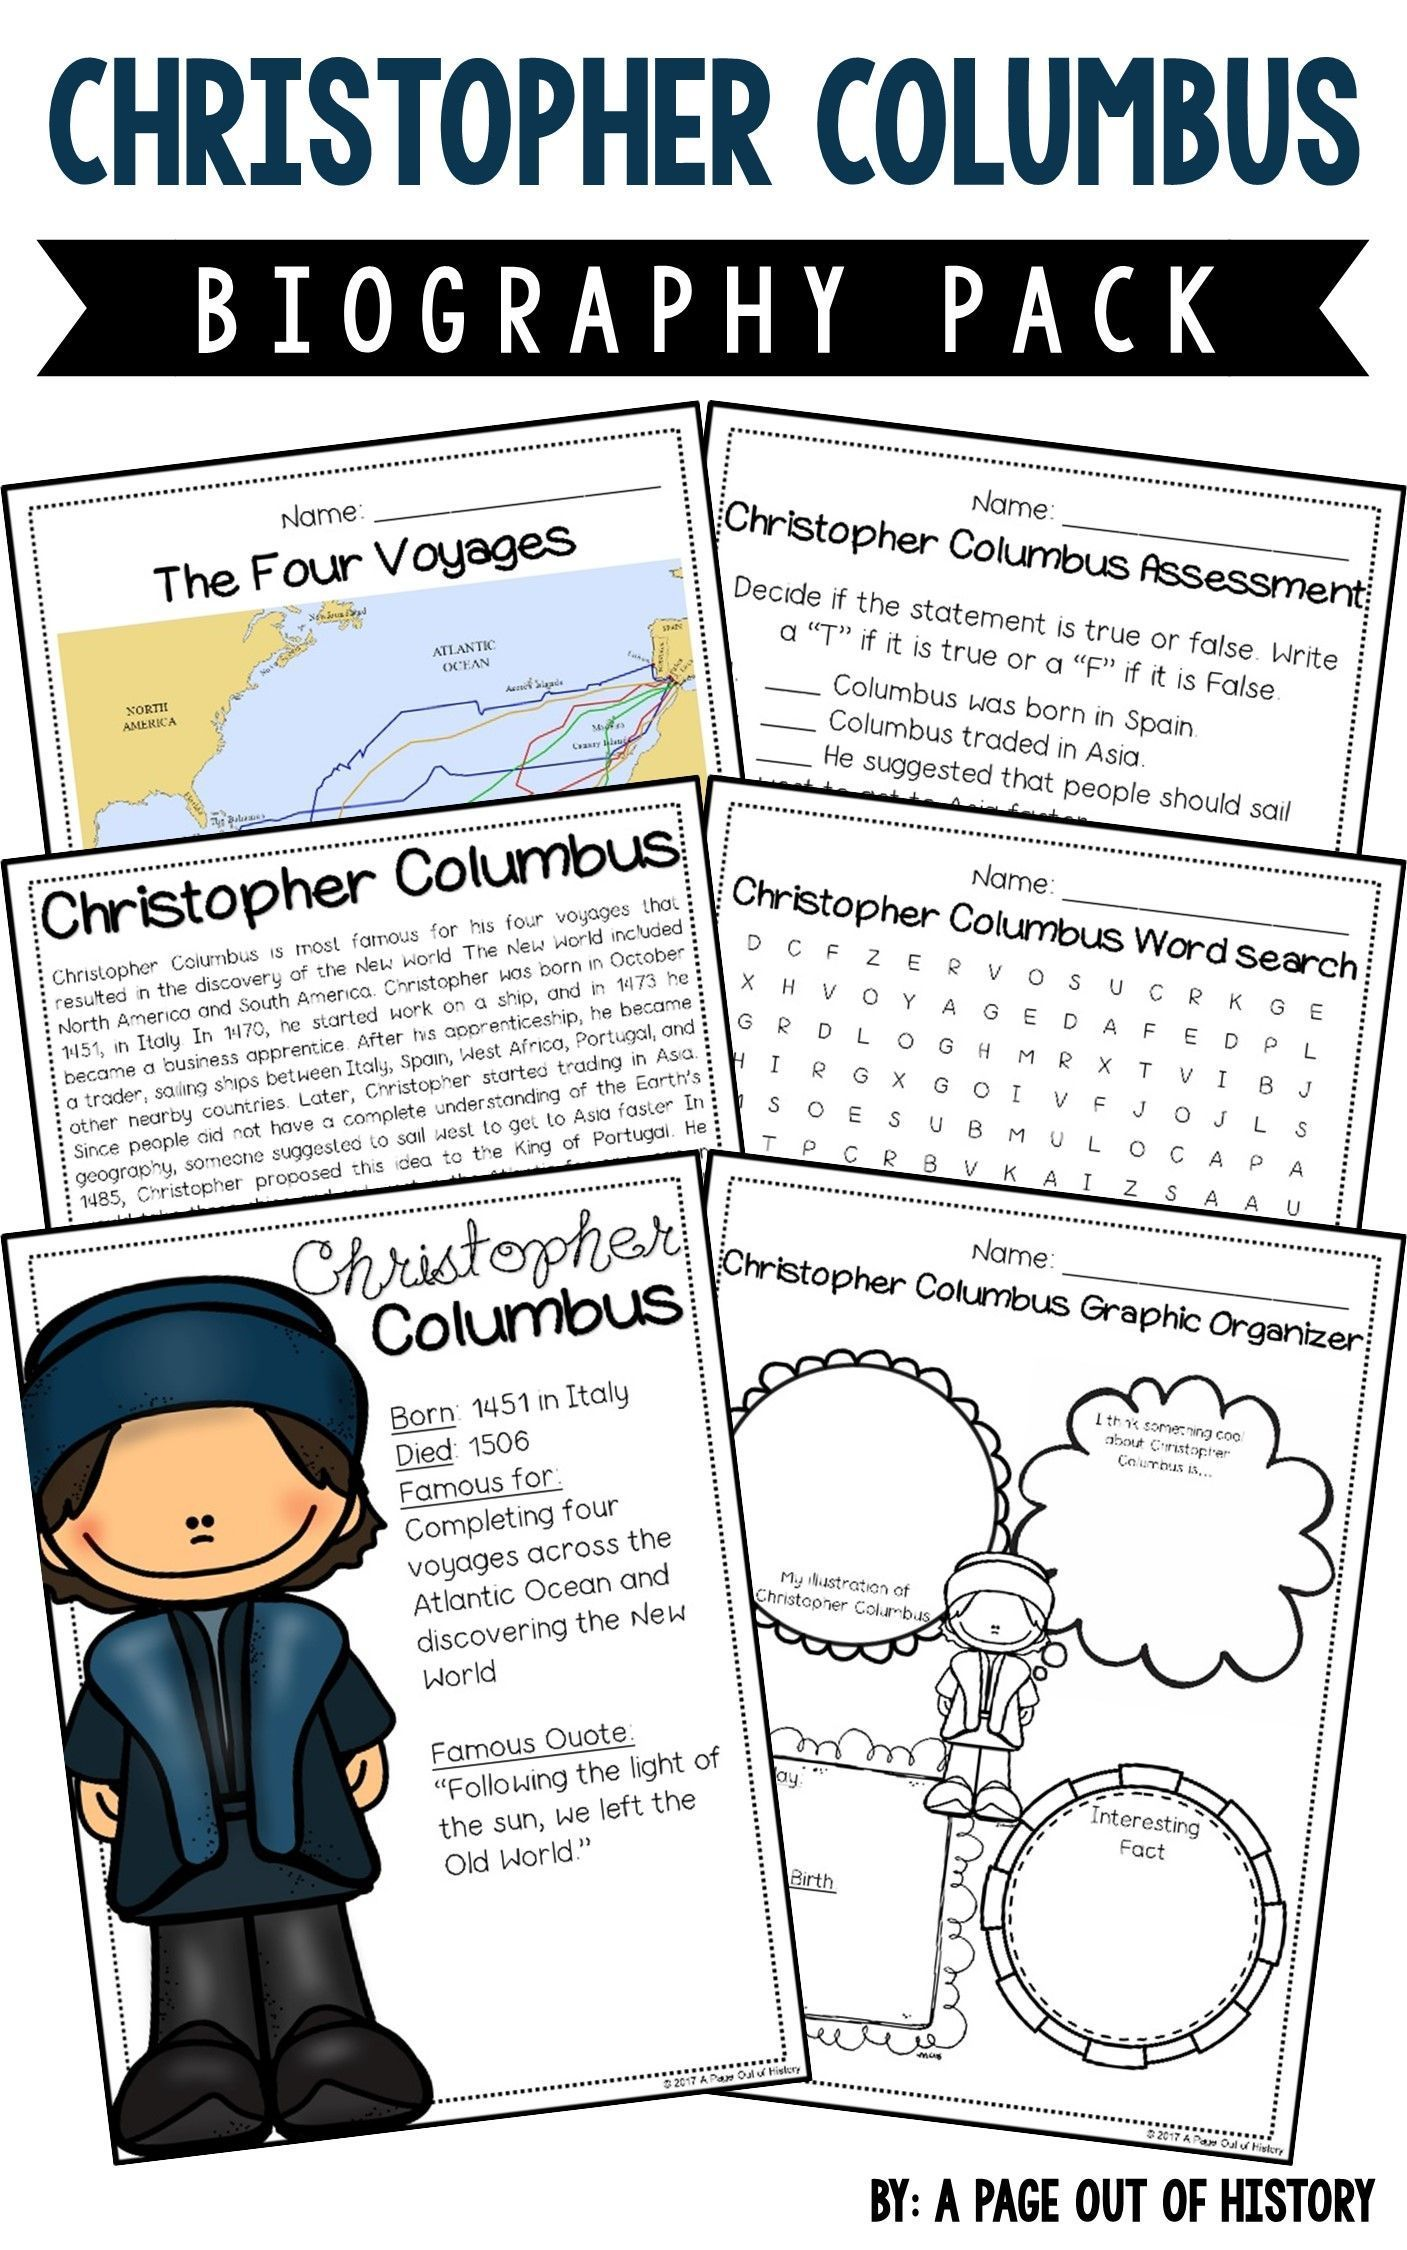 Christopher Columbus Biography Pack New World Explorers